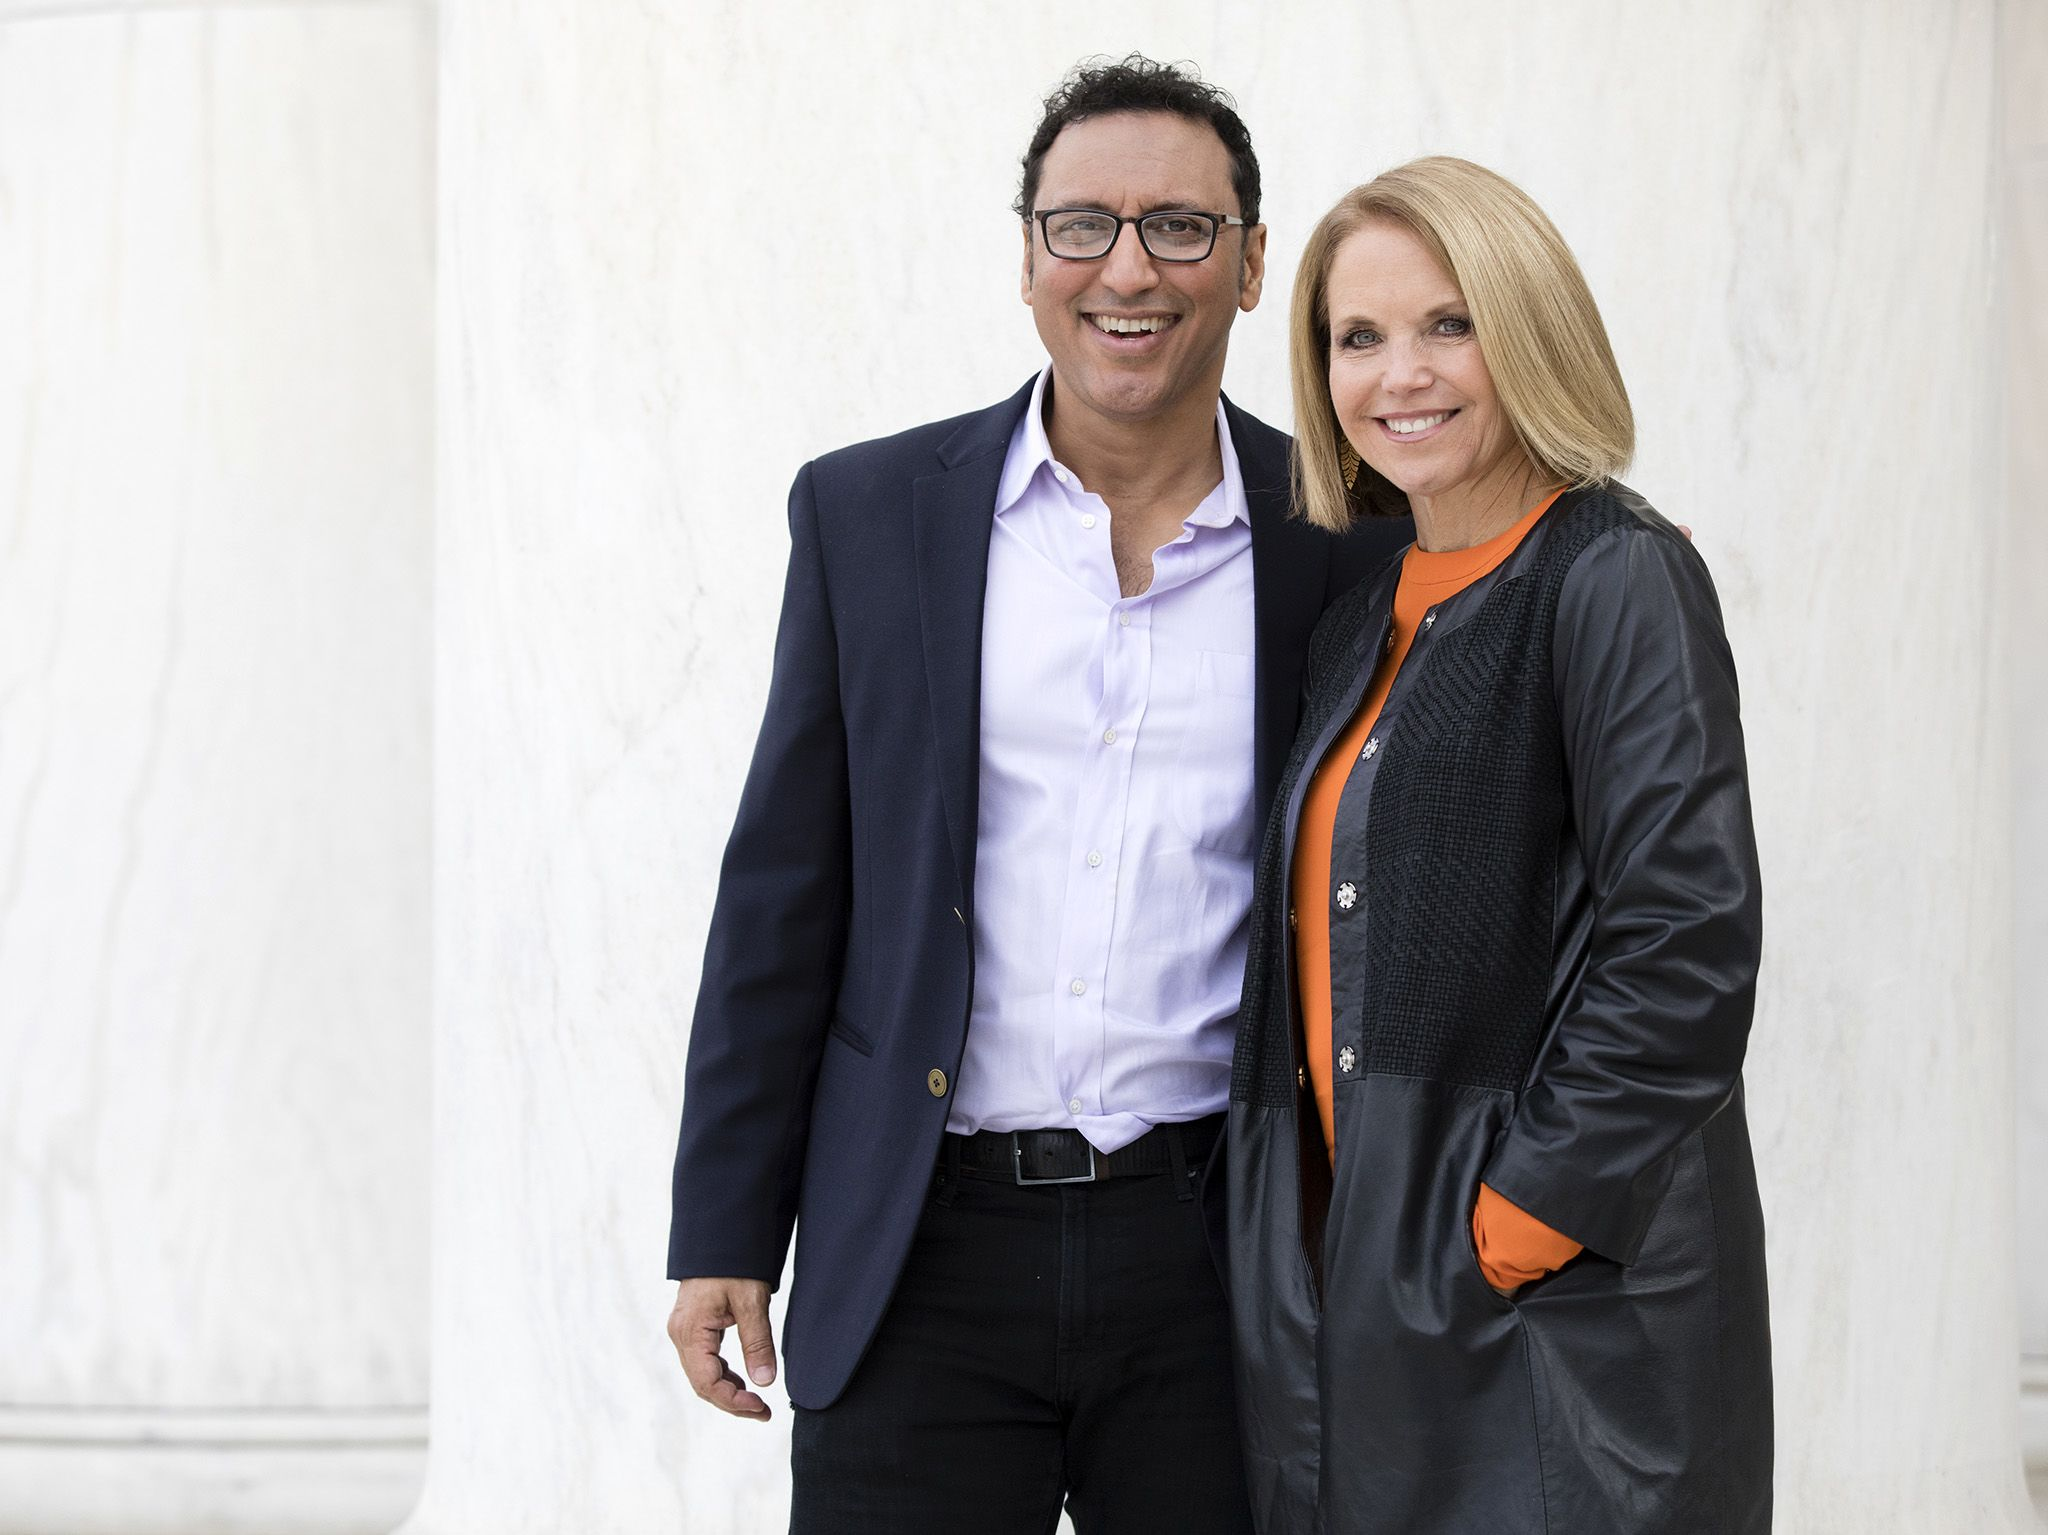 Washington, DC: (L to R) Aasif Mandvi and Katie Couric. This image is from America Inside Out... [Foto del giorno - August 2018]